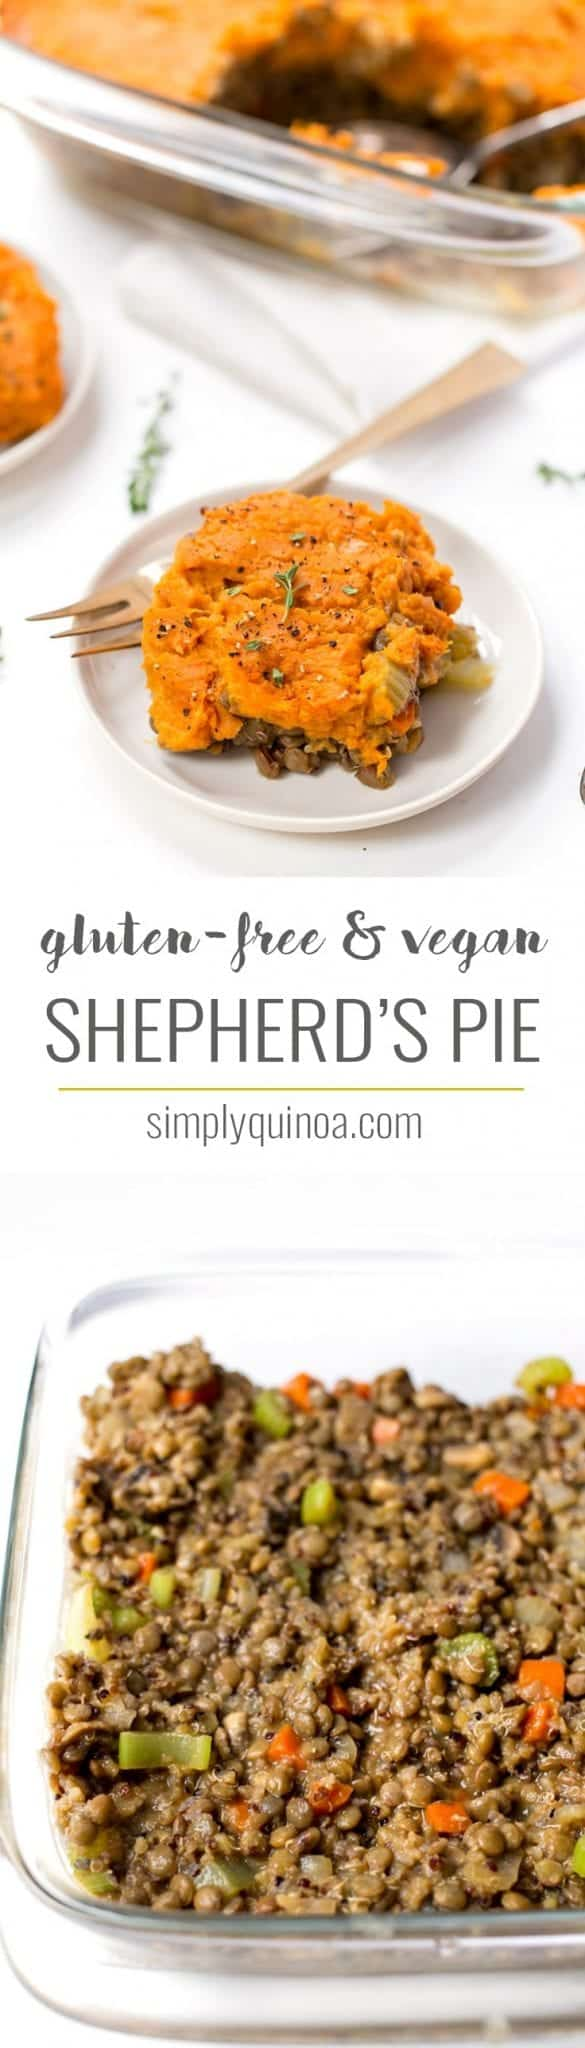 This VEGAN SHEPHERD'S PIE is a hearty comfort meal perfect for the holidays. Serve this up for Thanksgiving as a delicious plant-based side dish or entree!